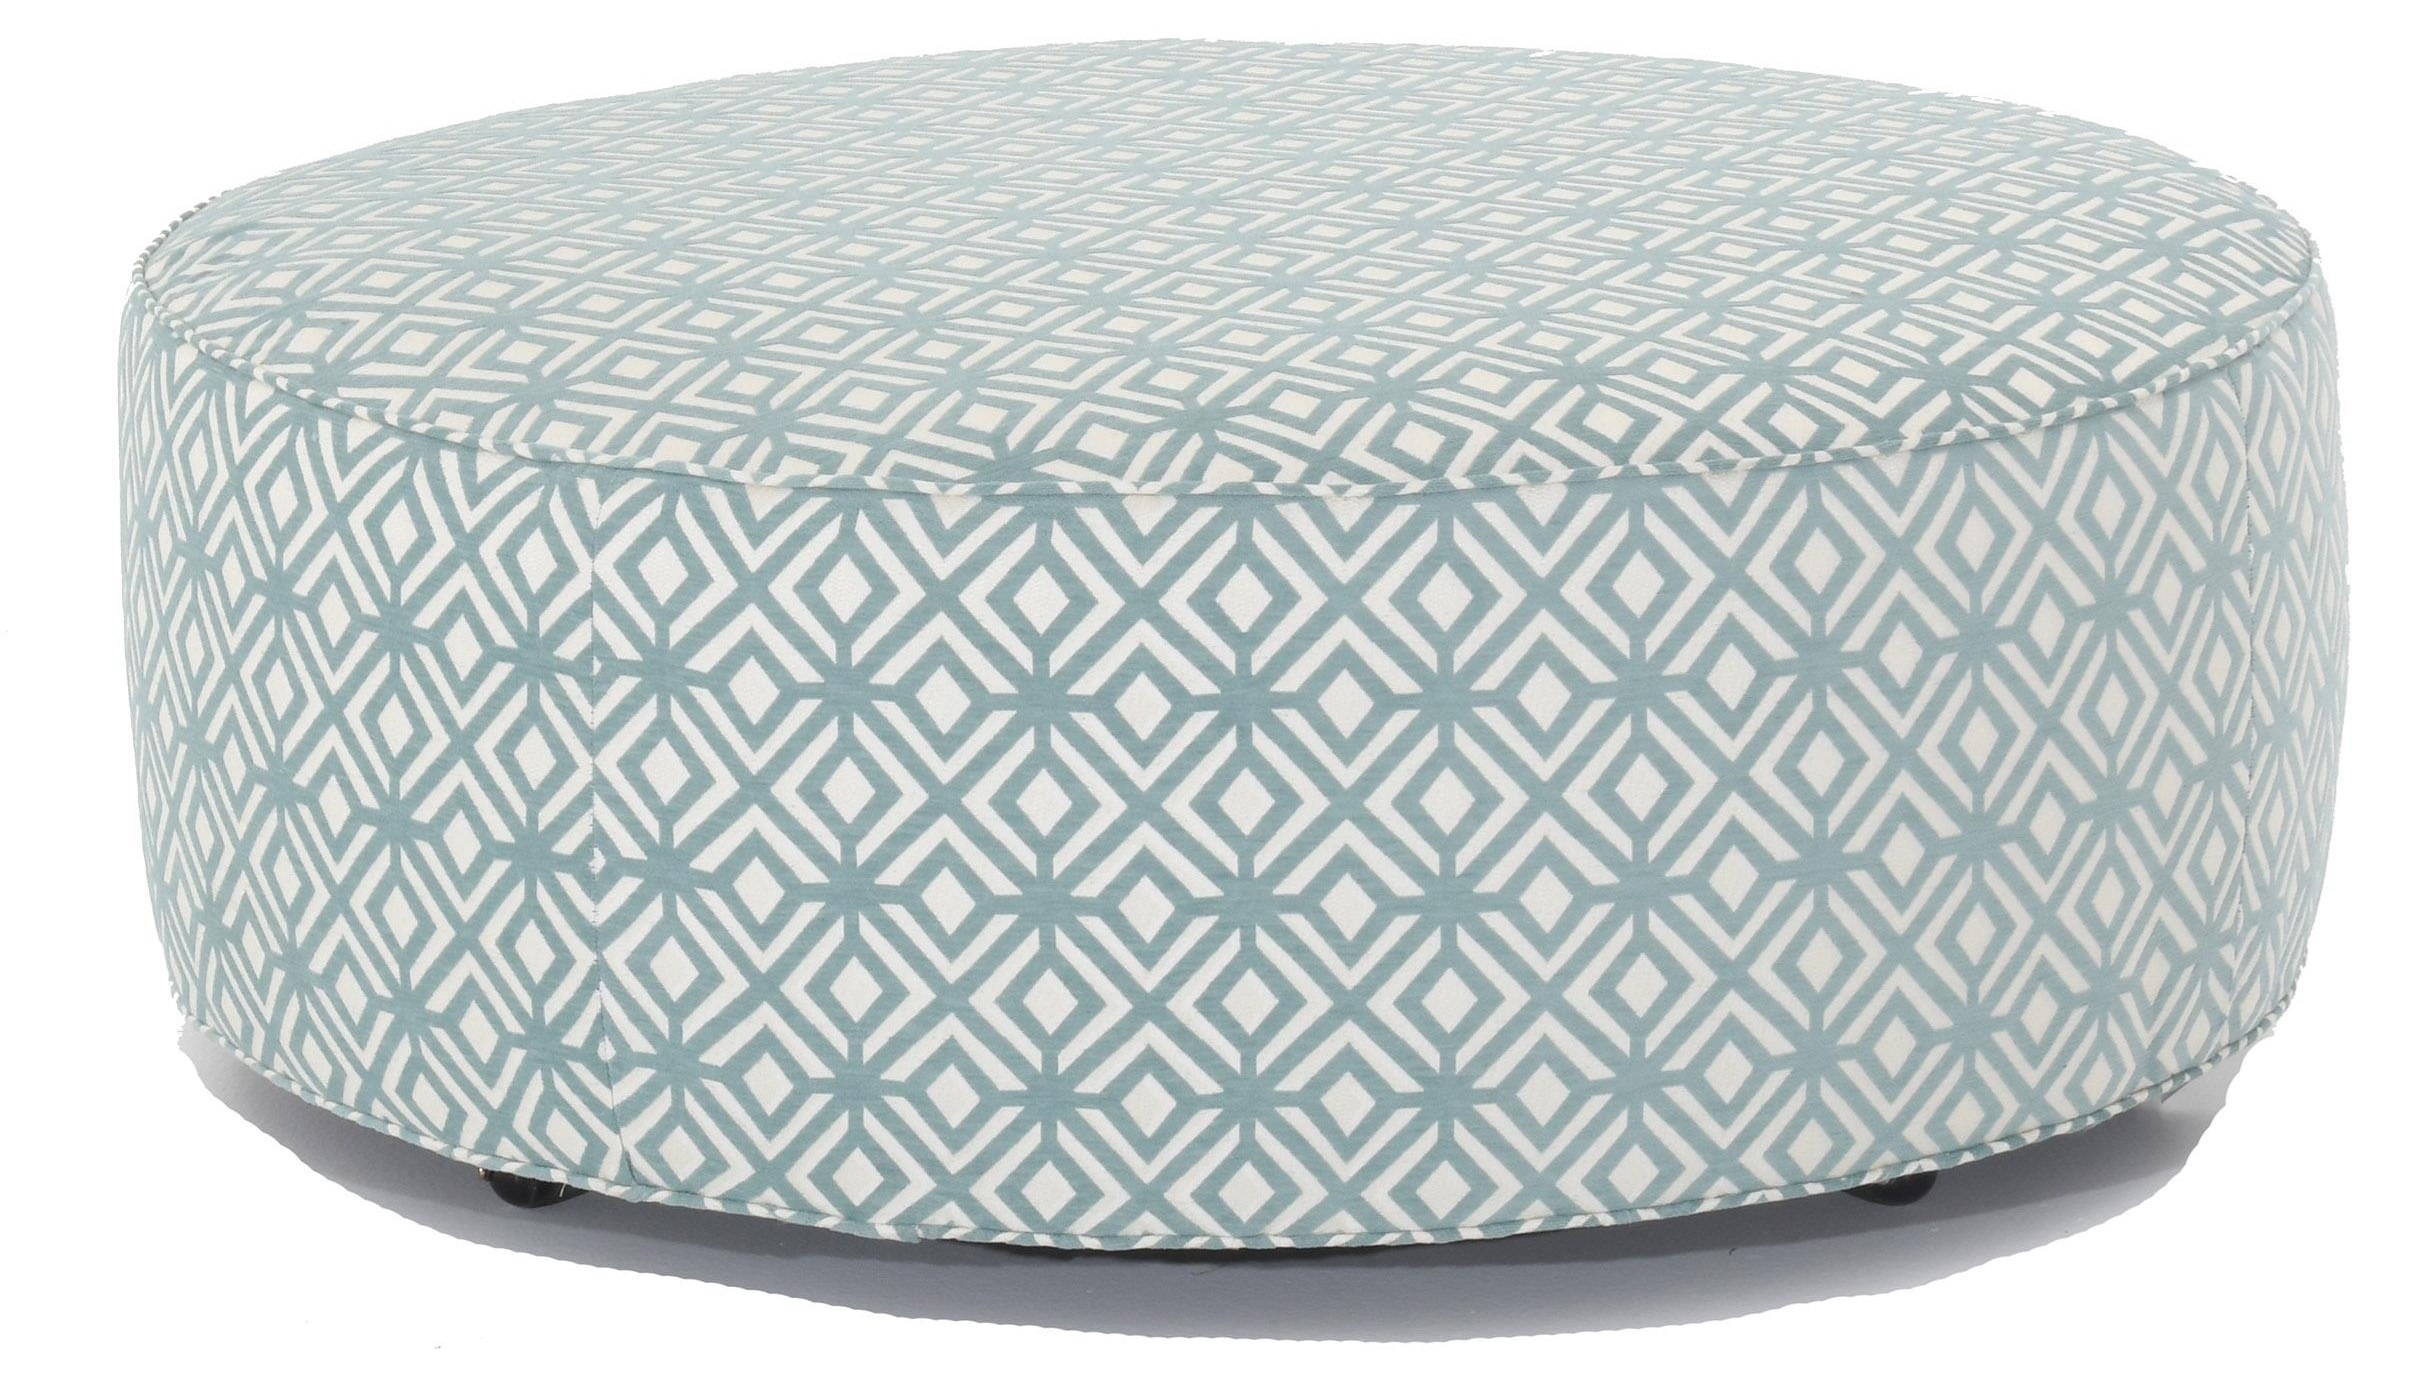 2021 Customizable Round Ottoman by Huntington House at Baer's Furniture